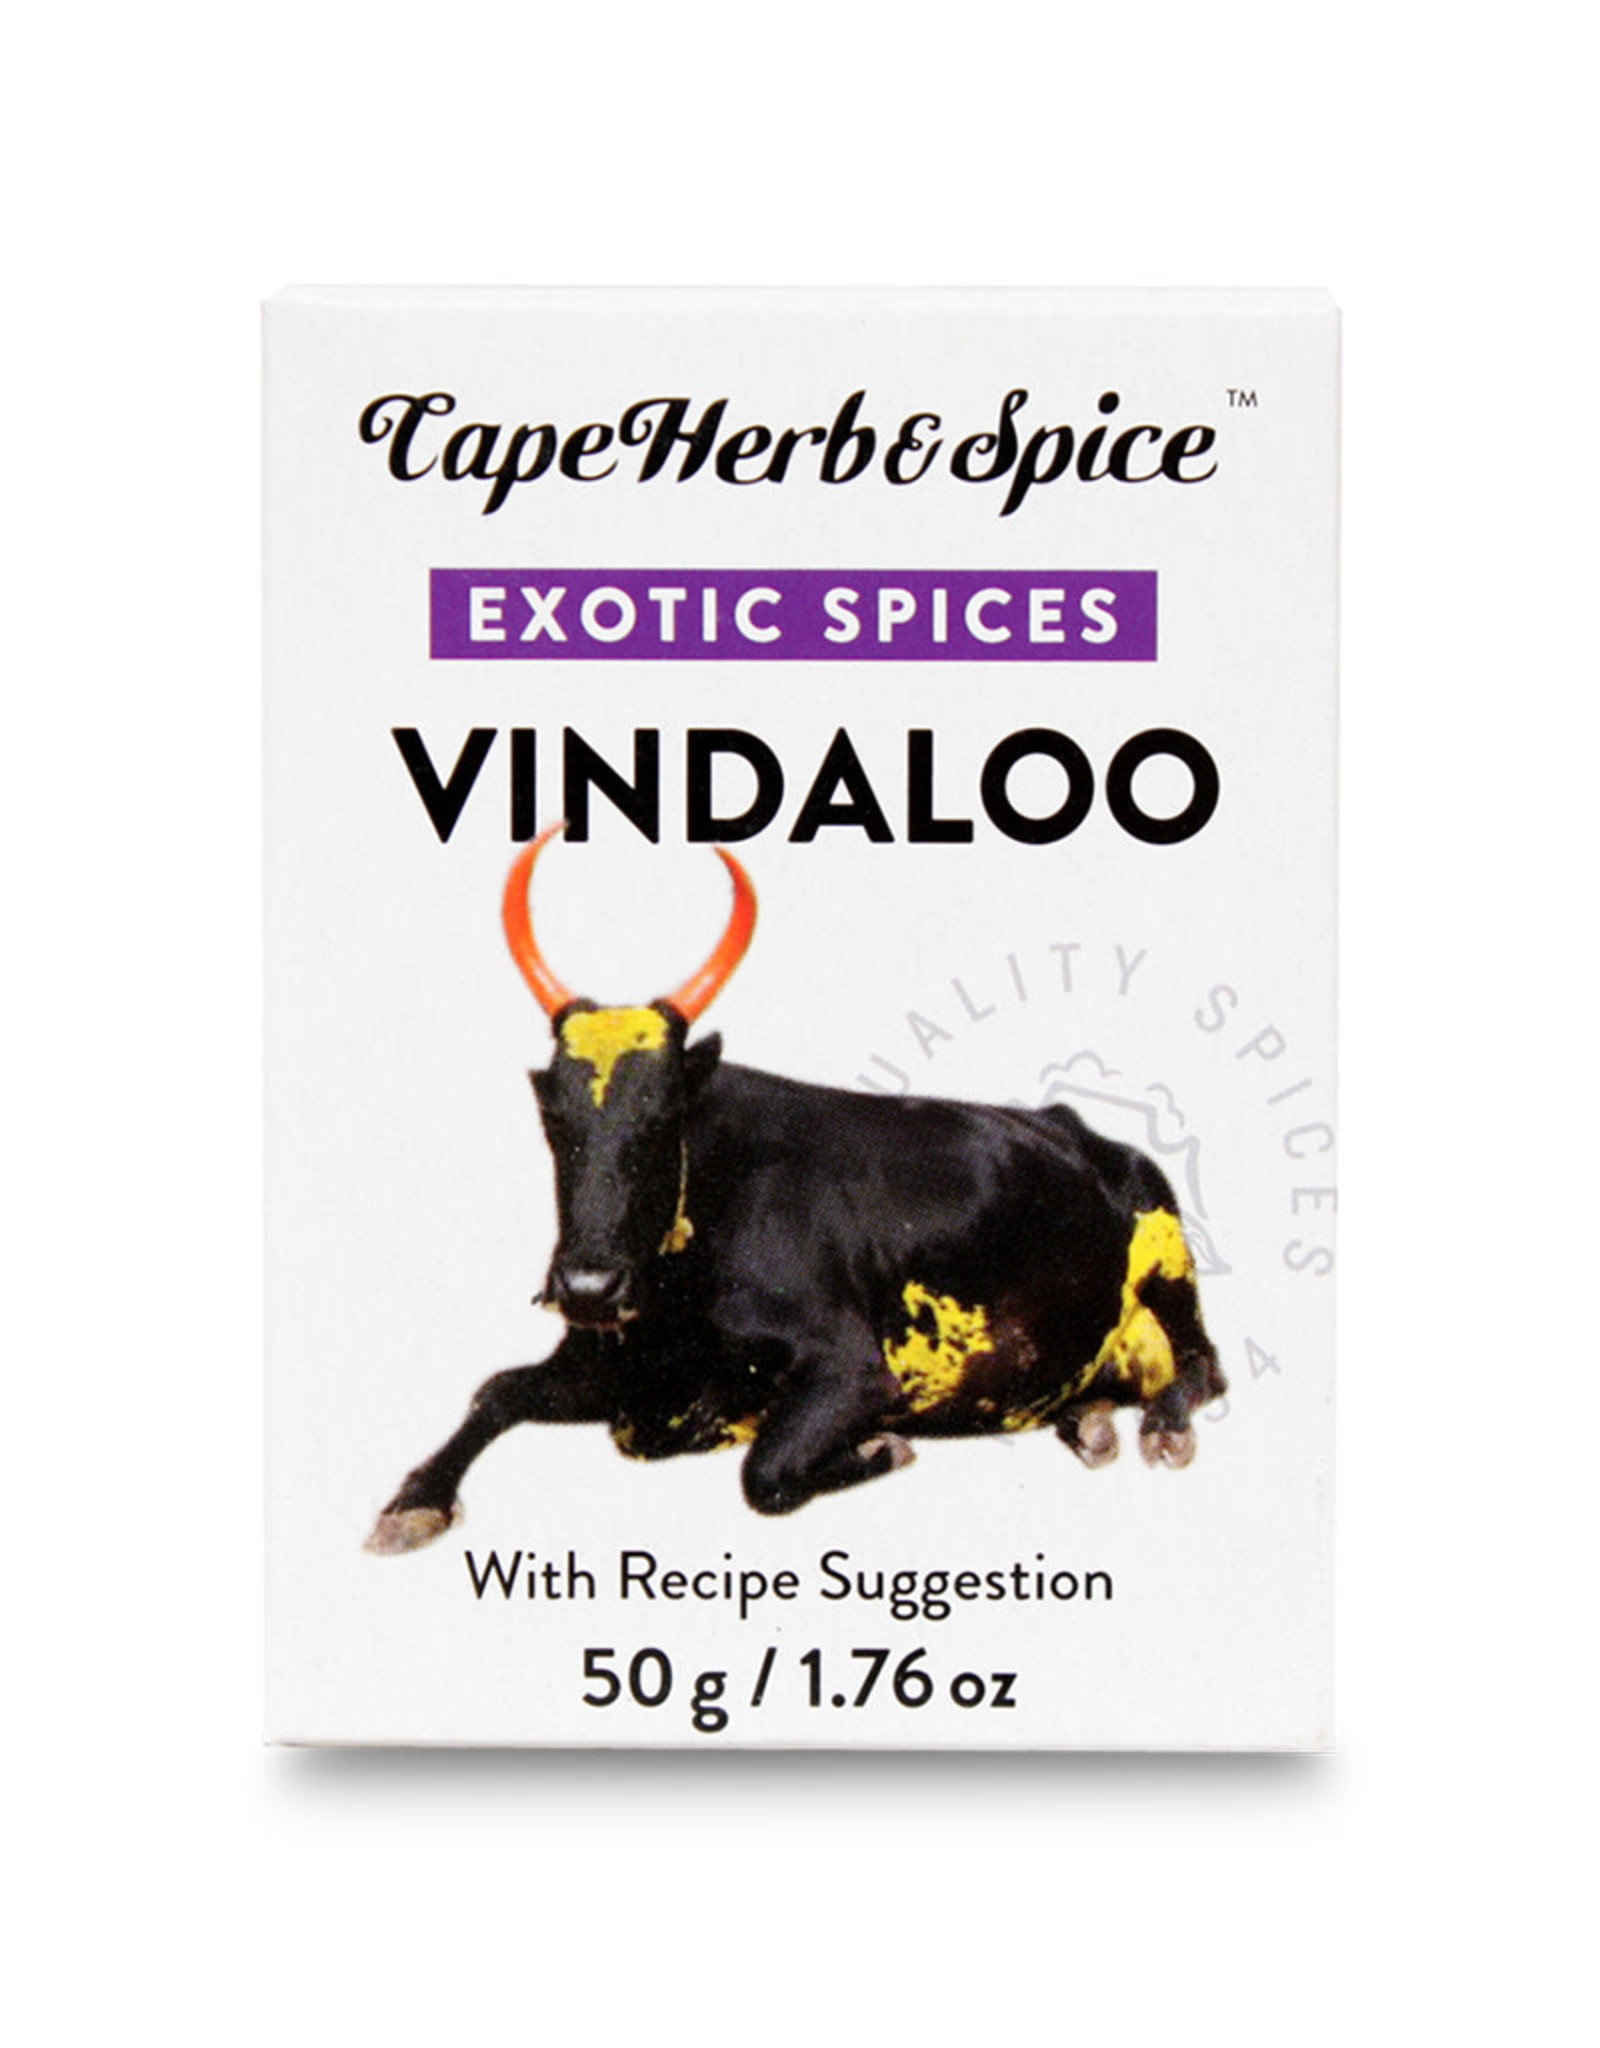 Cape Herb & Spice Co. Cape Herb & Spice - Exotic Spices, Vindaloo (50g)